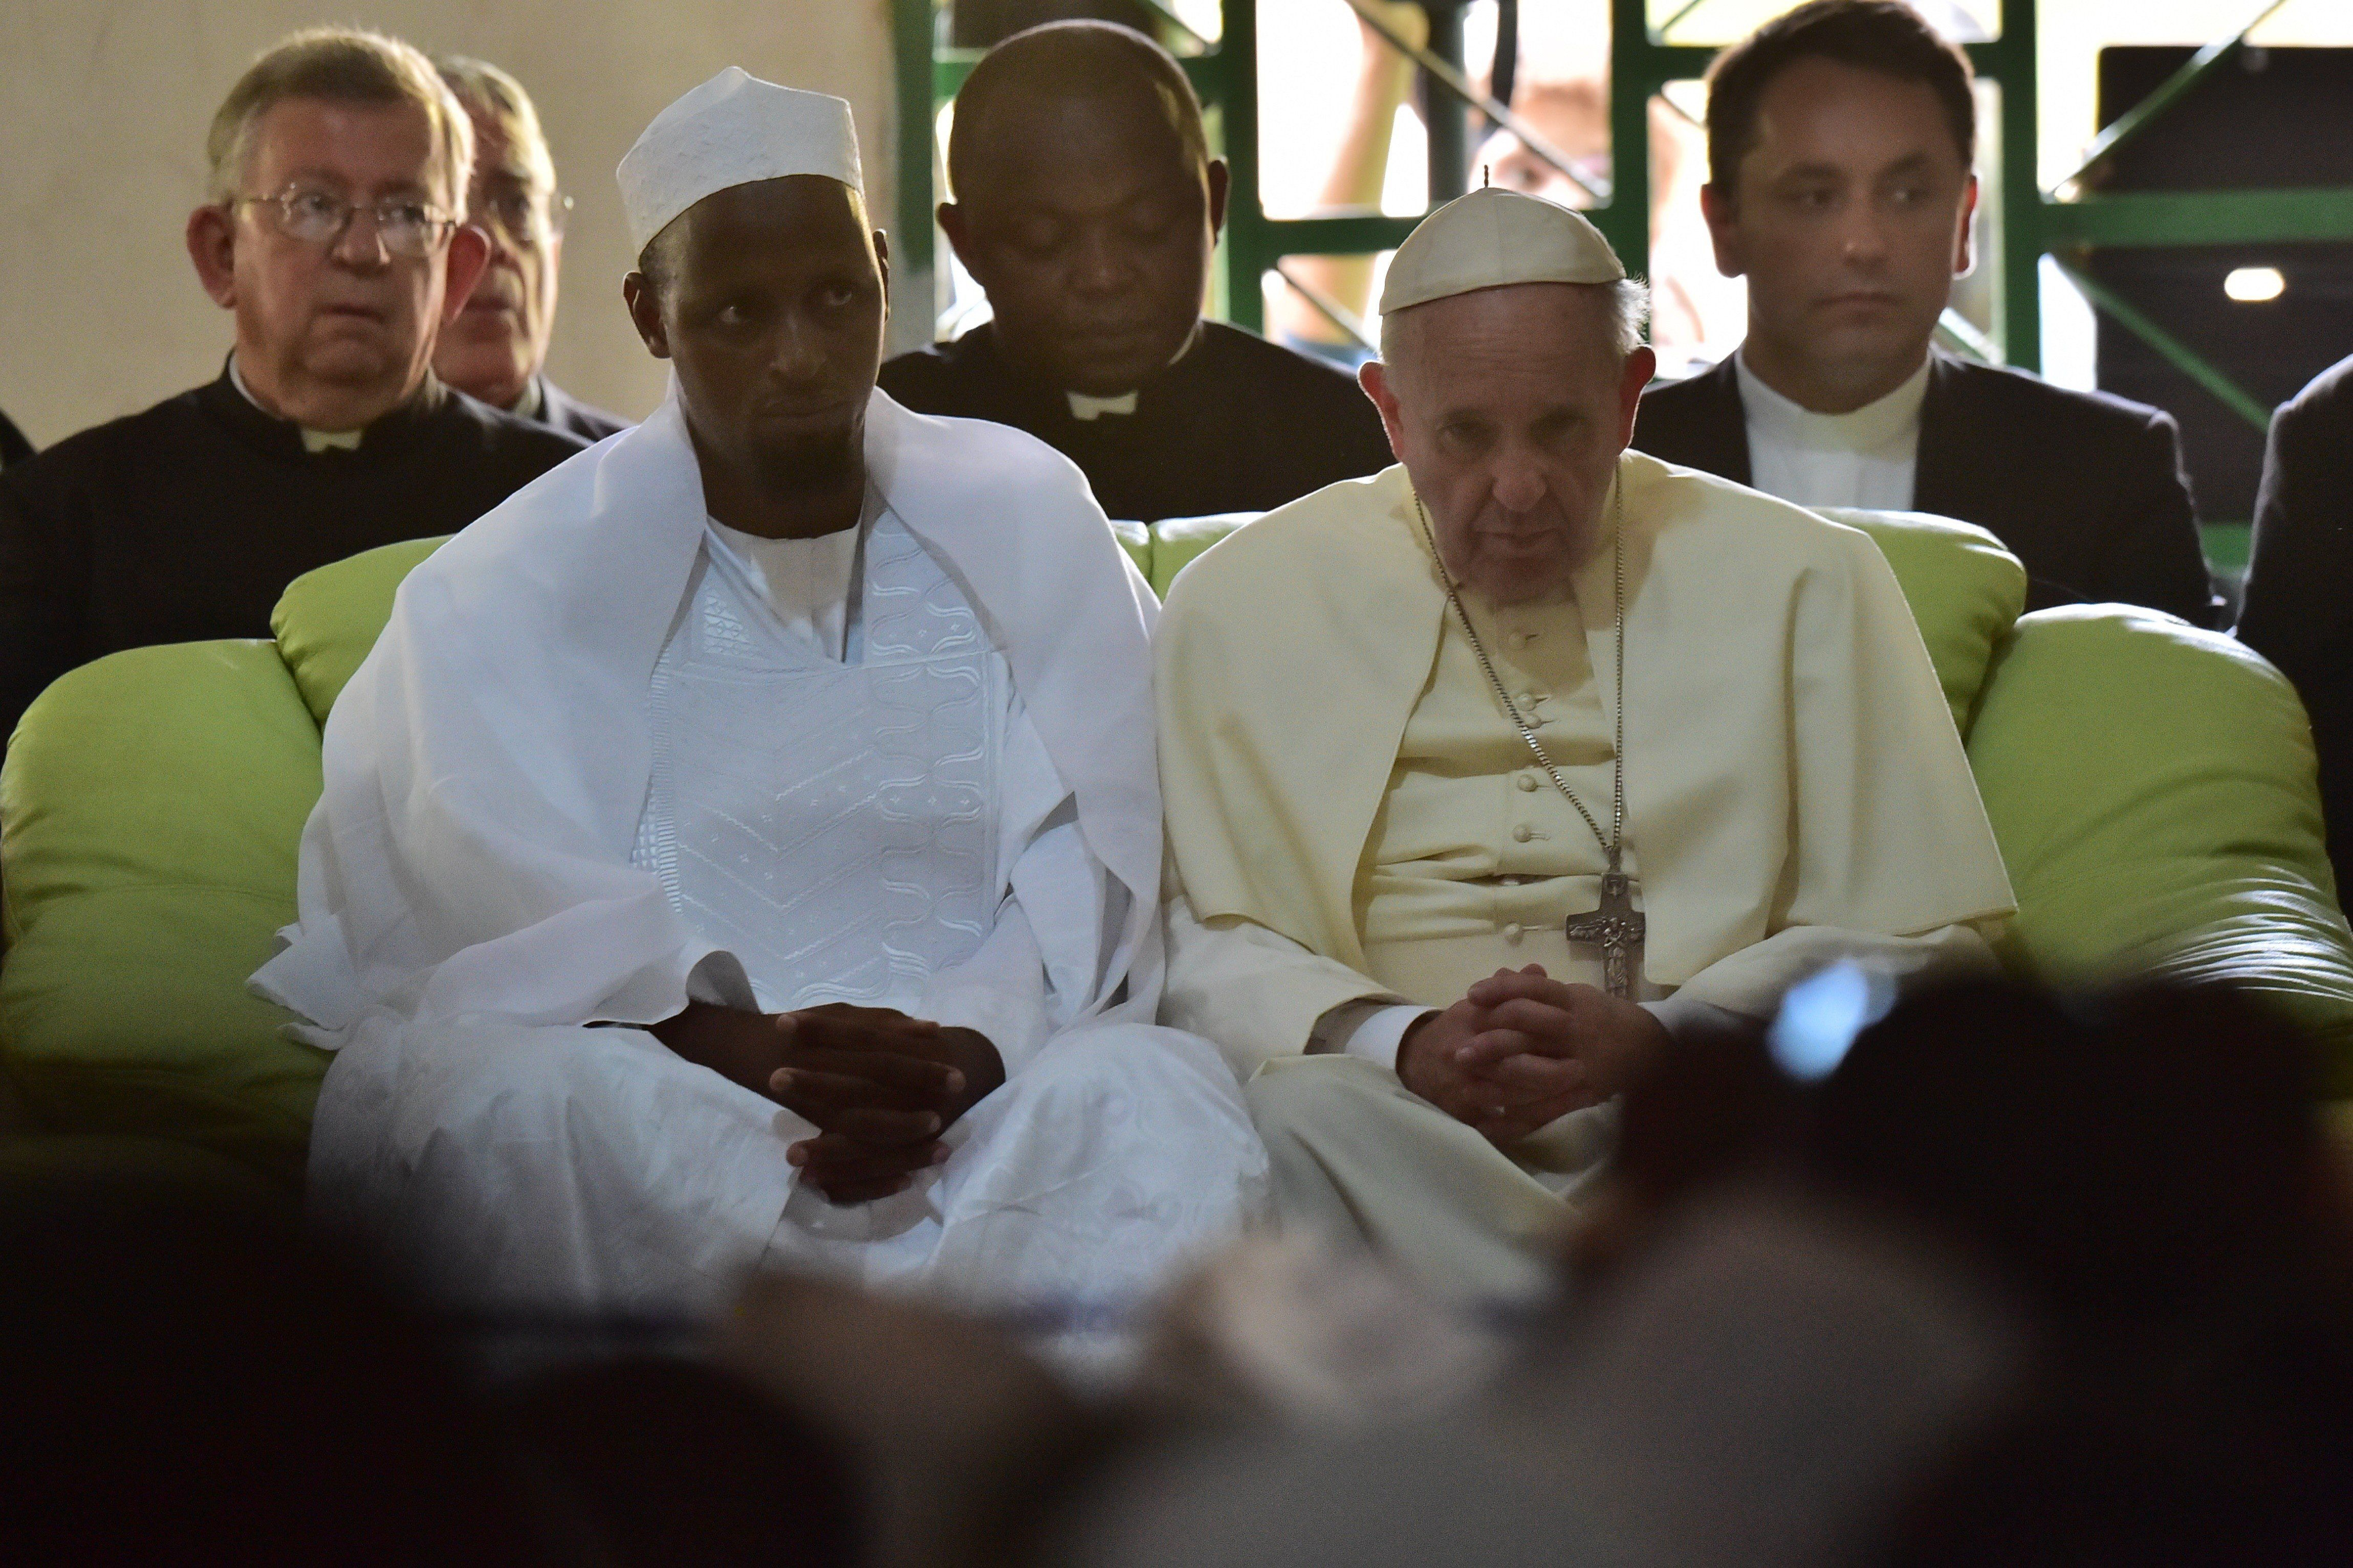 Pope Francis (C) looks on, alongside Imam Nehedid Tidjani (2-L), during a visit to the Central Mosque in Bangui on November 3